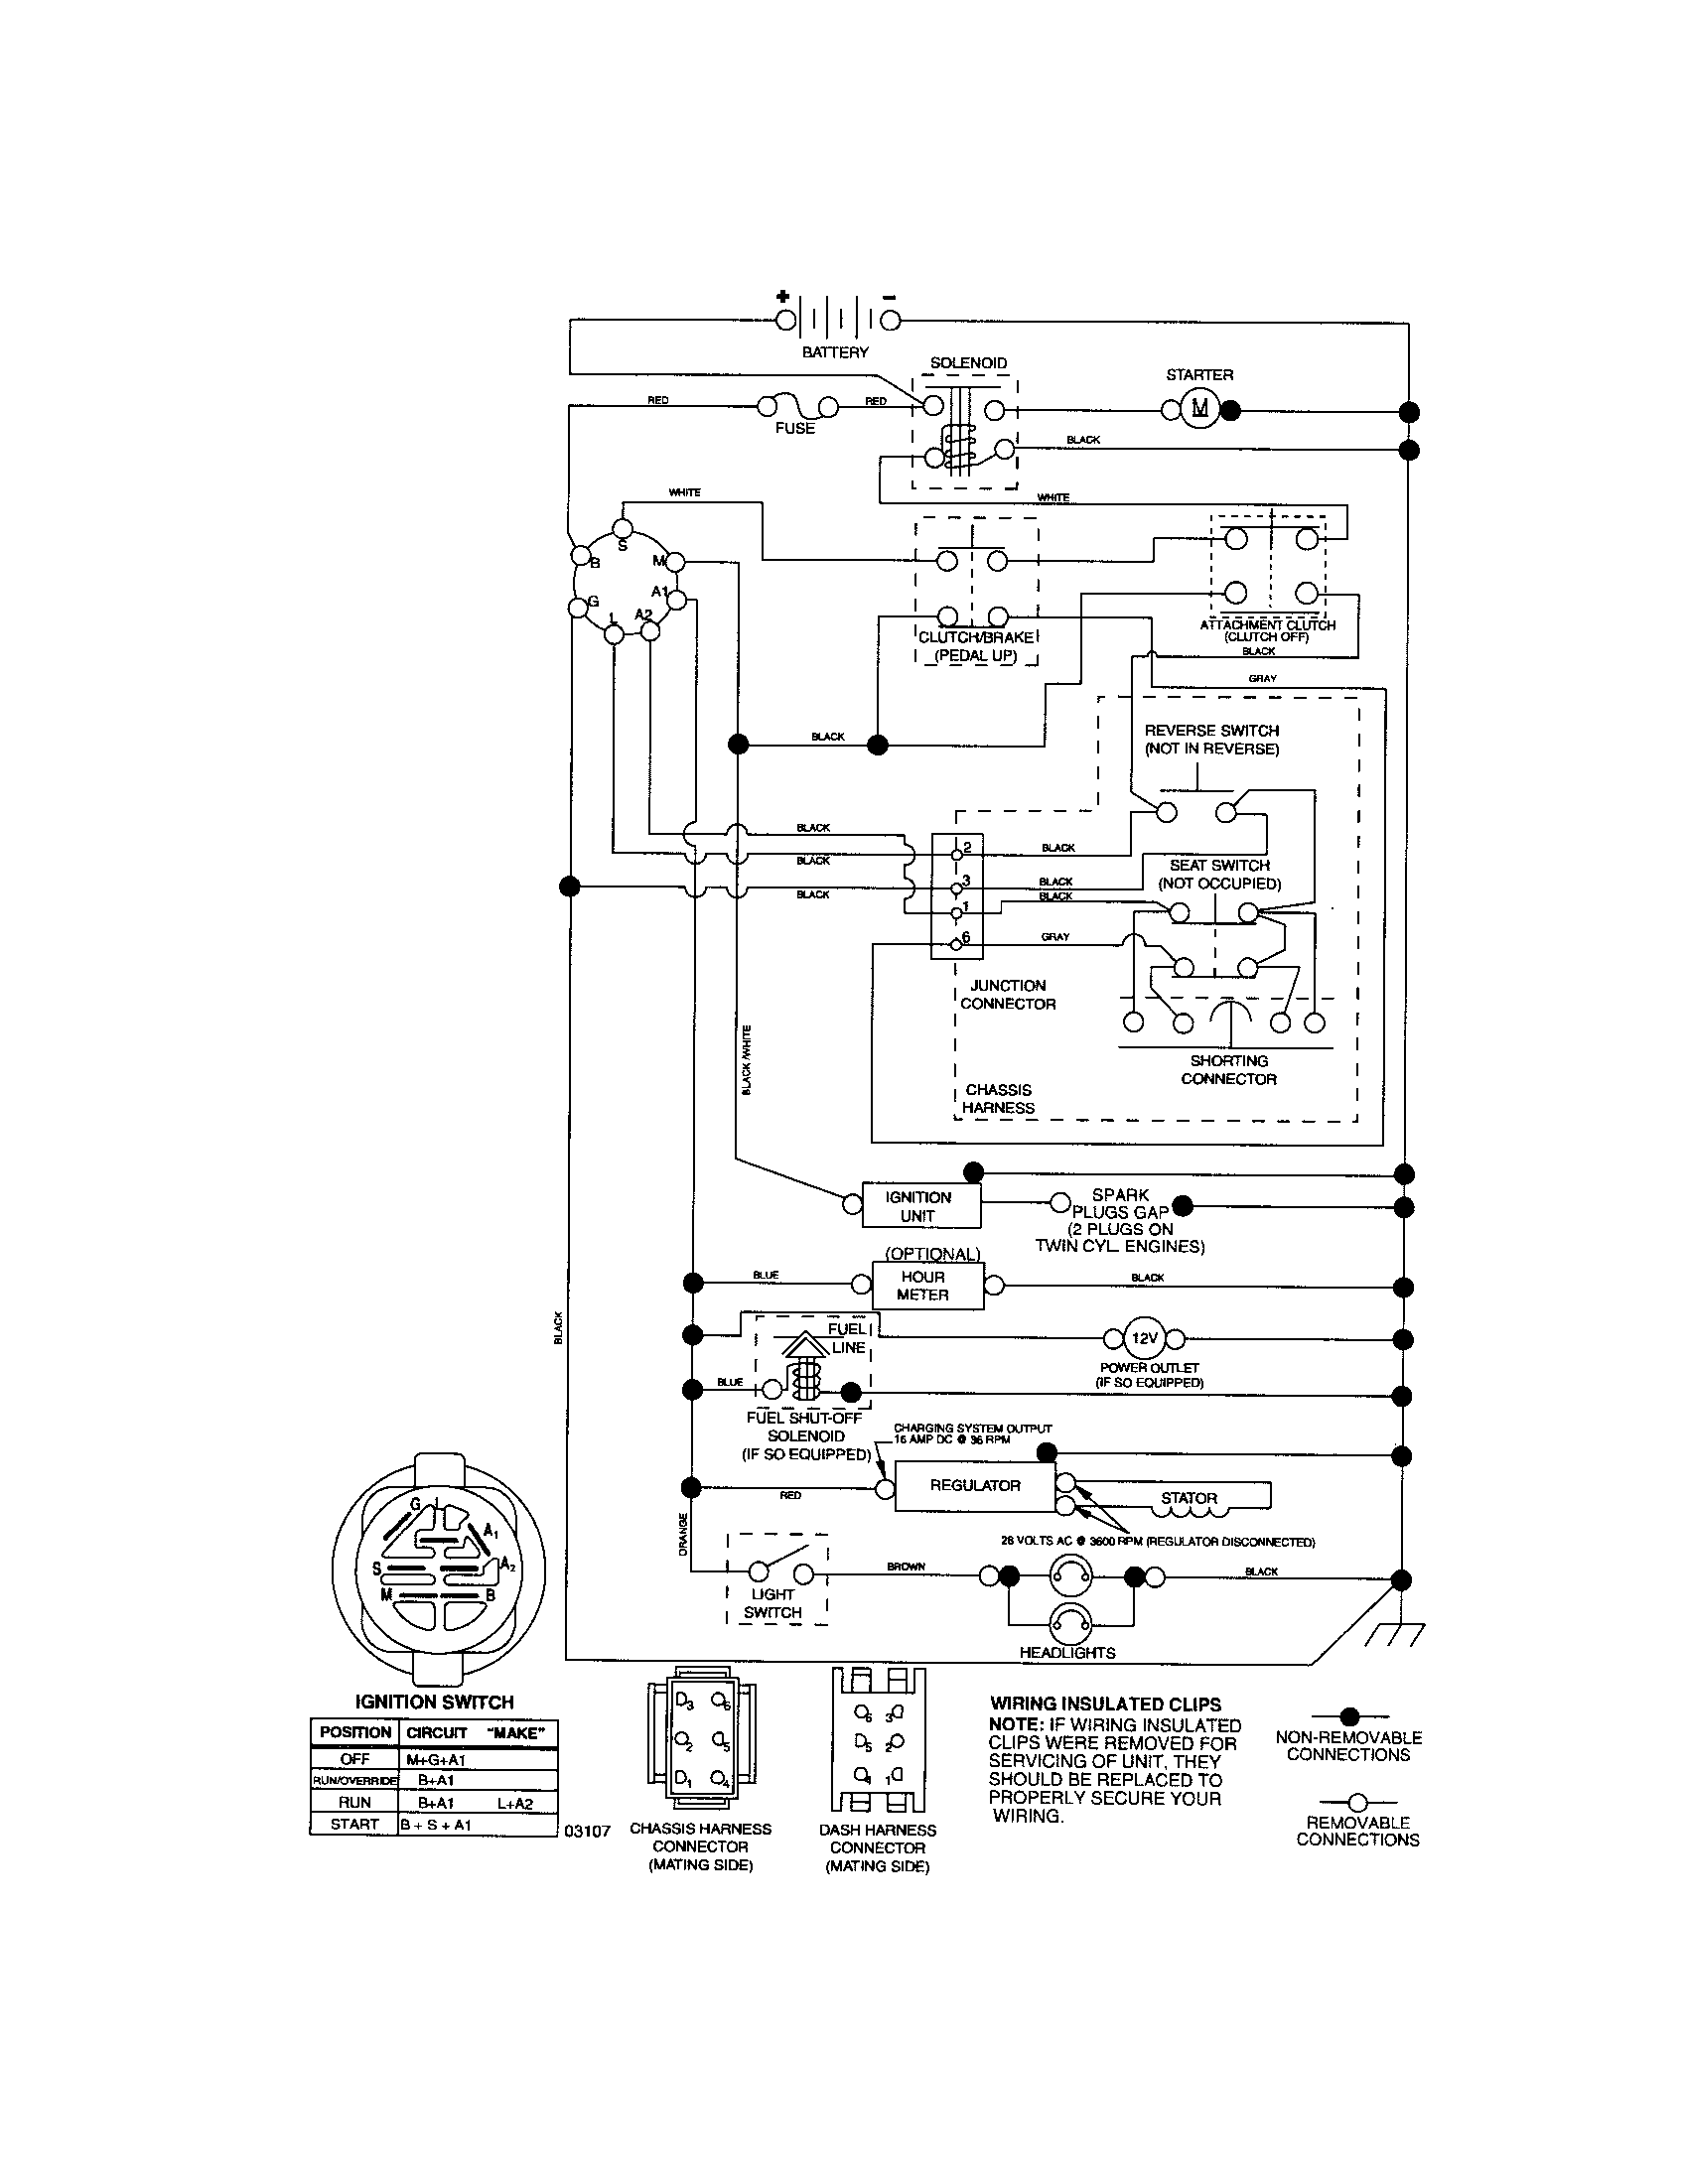 6af5f1447fd13c8443376822ddc1e105 craftsman riding mower electrical diagram wiring diagram poulan pro riding lawn mower wiring diagram at cos-gaming.co